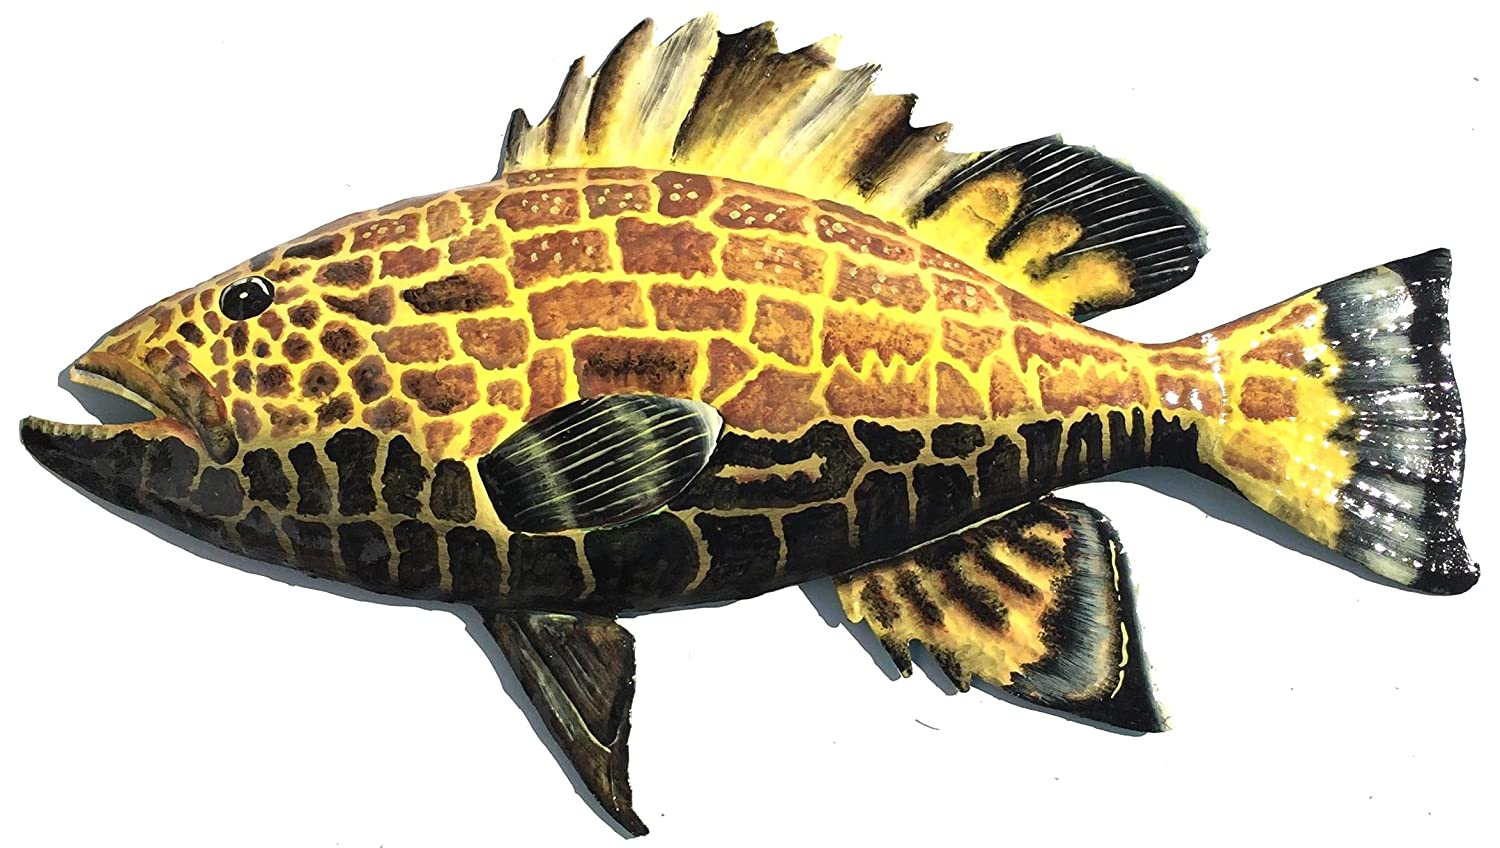 Amazon.com: Black Grouper Fish Wall Art Replica Mount - Haitian ...